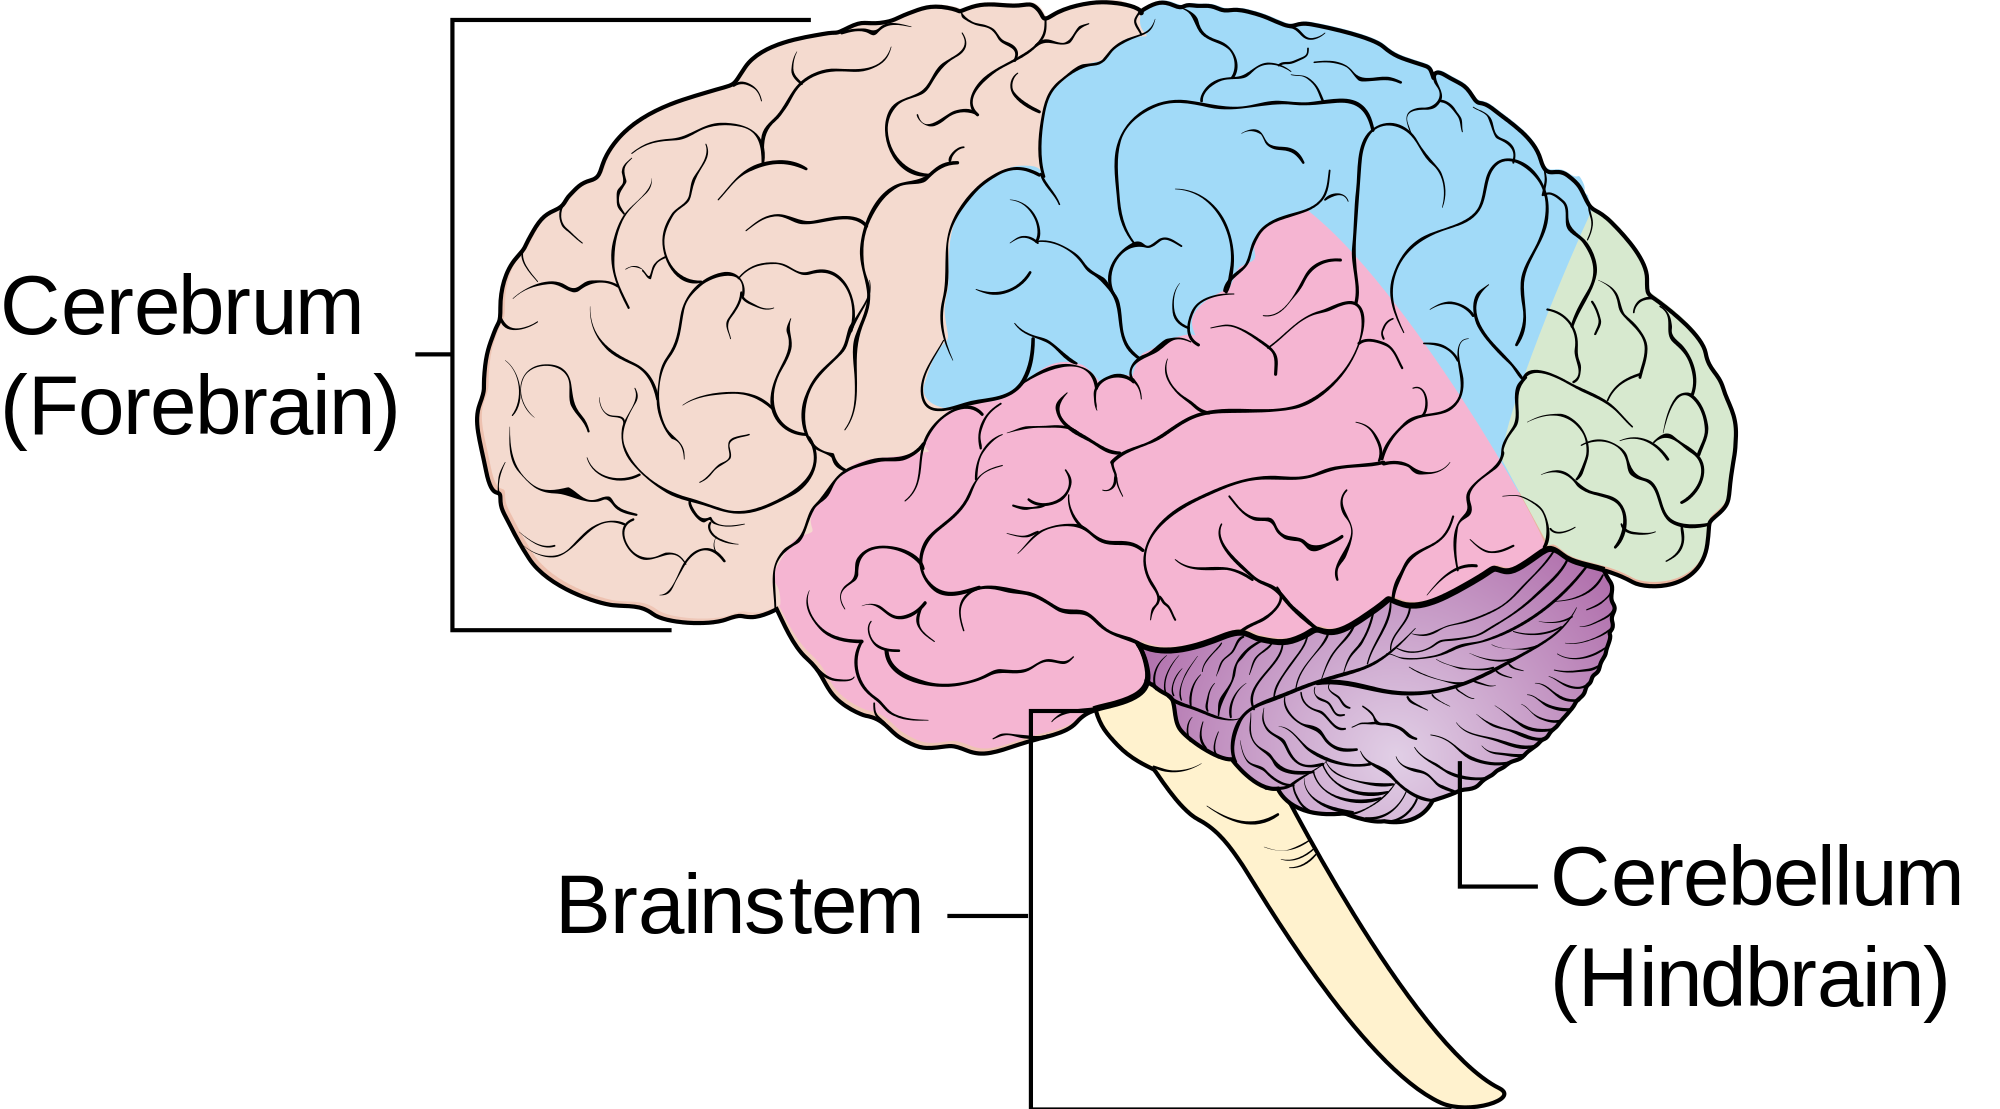 The brain stem is the smallest part of the brain. It is 3 ...